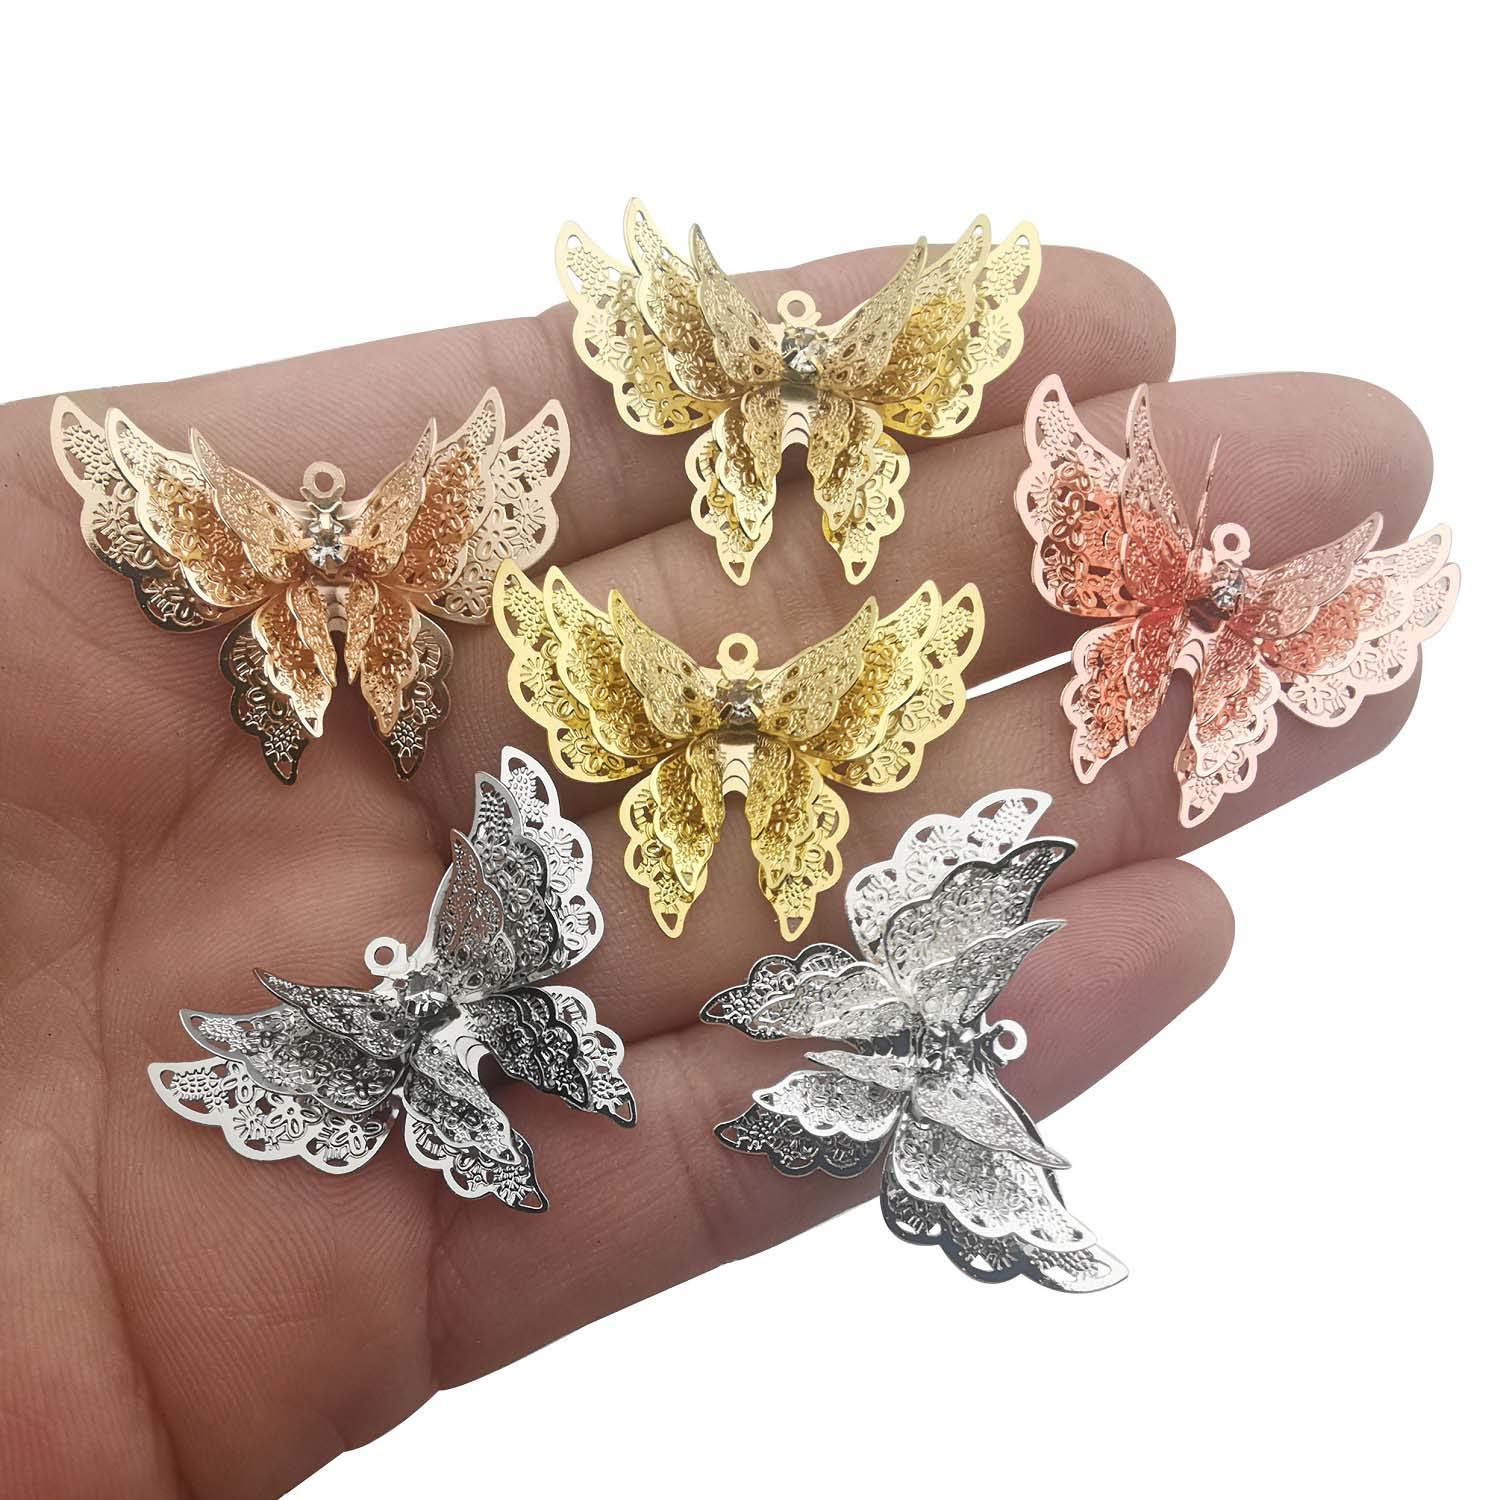 YoudiylaUK 7Pcs Craft Supplies Brass Mixed Hollow Butterfly Pendants Charms for Jewelry Making Crafting Findings Accessory for DIY Necklace Bracelet M245